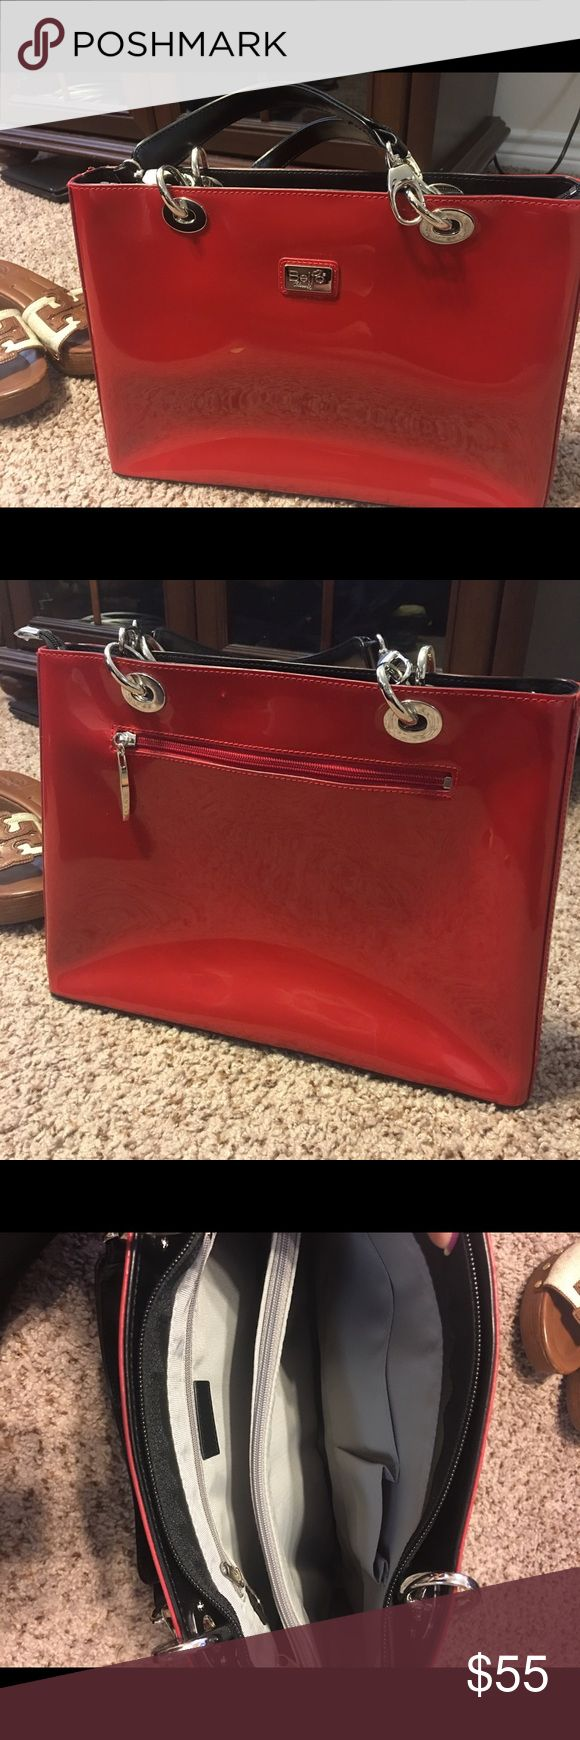 Beijo classic purse Beautiful Beijo red patented purse. 3 large compartments, 1 zipped & one outside pocket. Brand new.  Never used. beijo Bags Totes